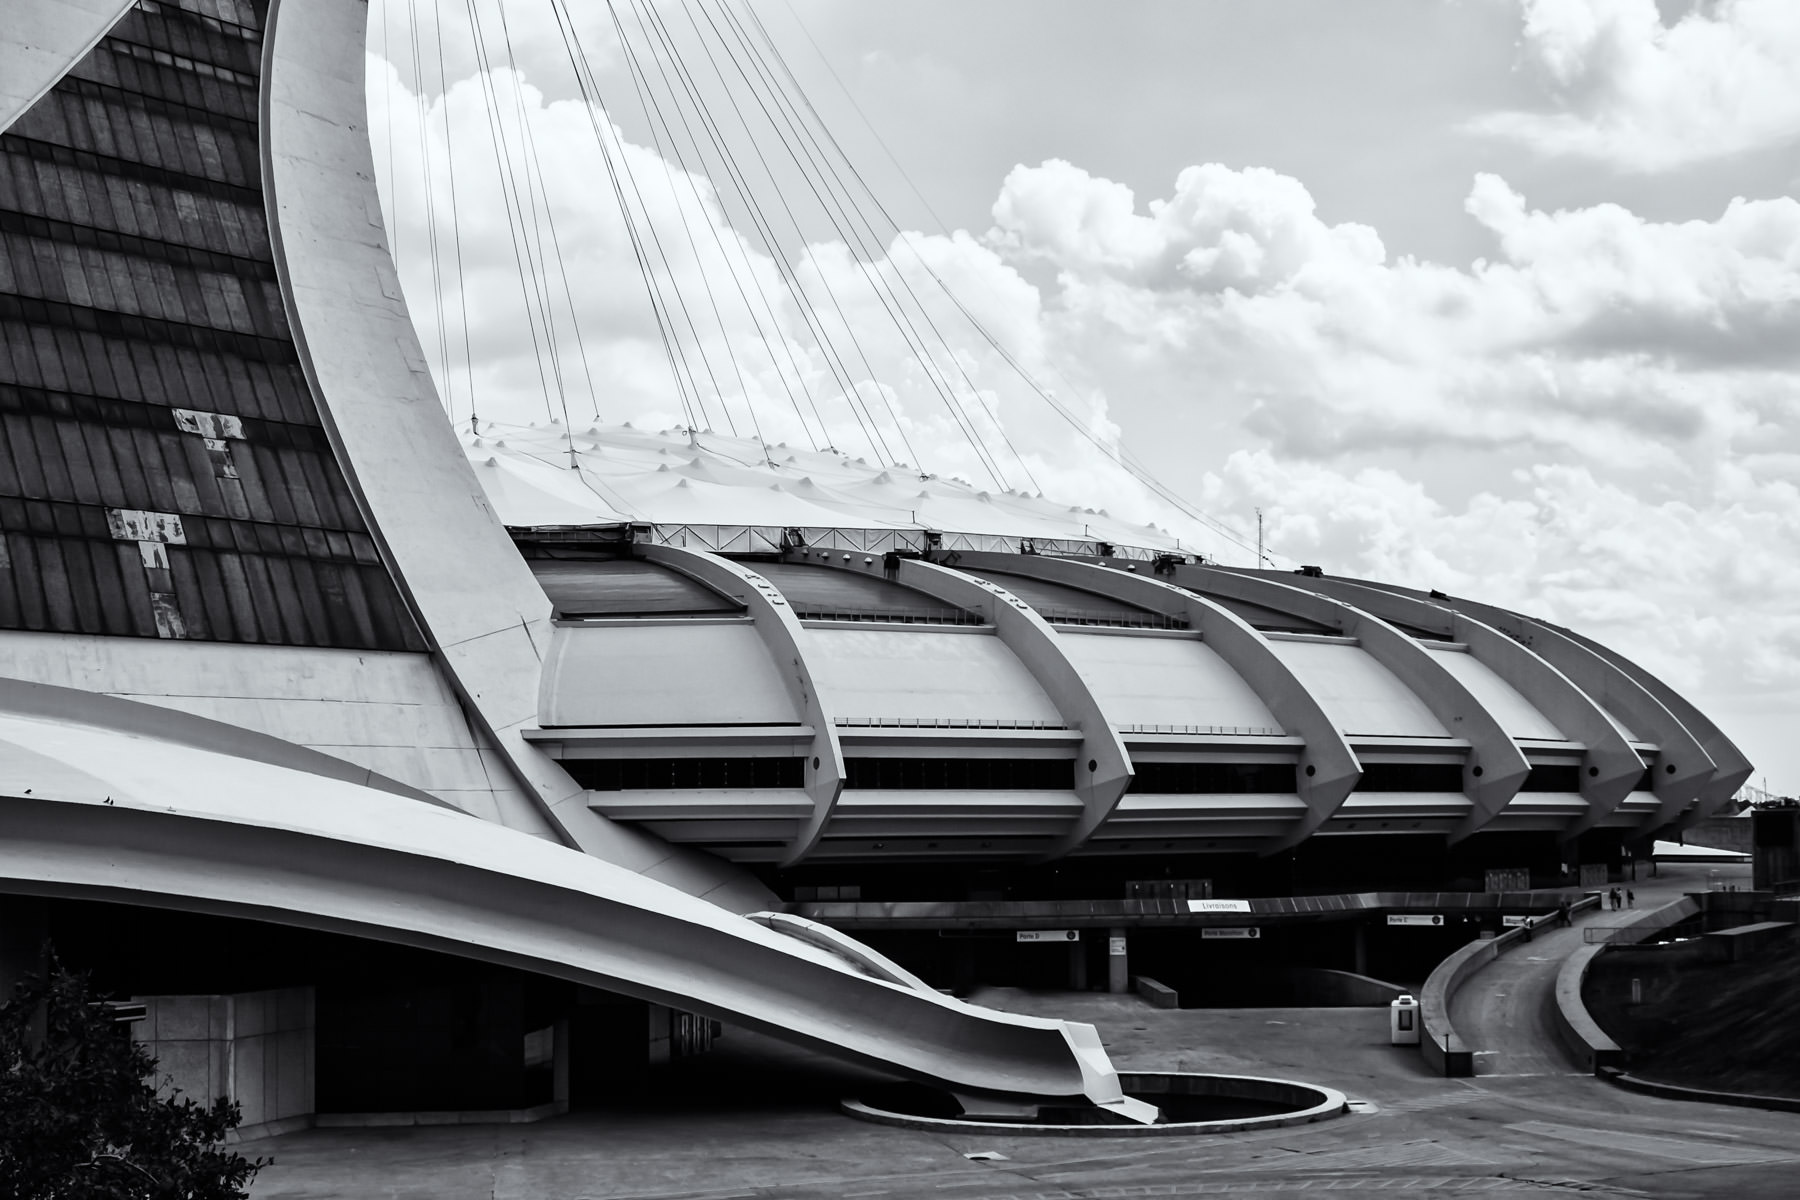 Montréal's Stade Olympique, lying in disrepair since the Expos decamped to Washington in 2004, resembles an alien craft in this shot.